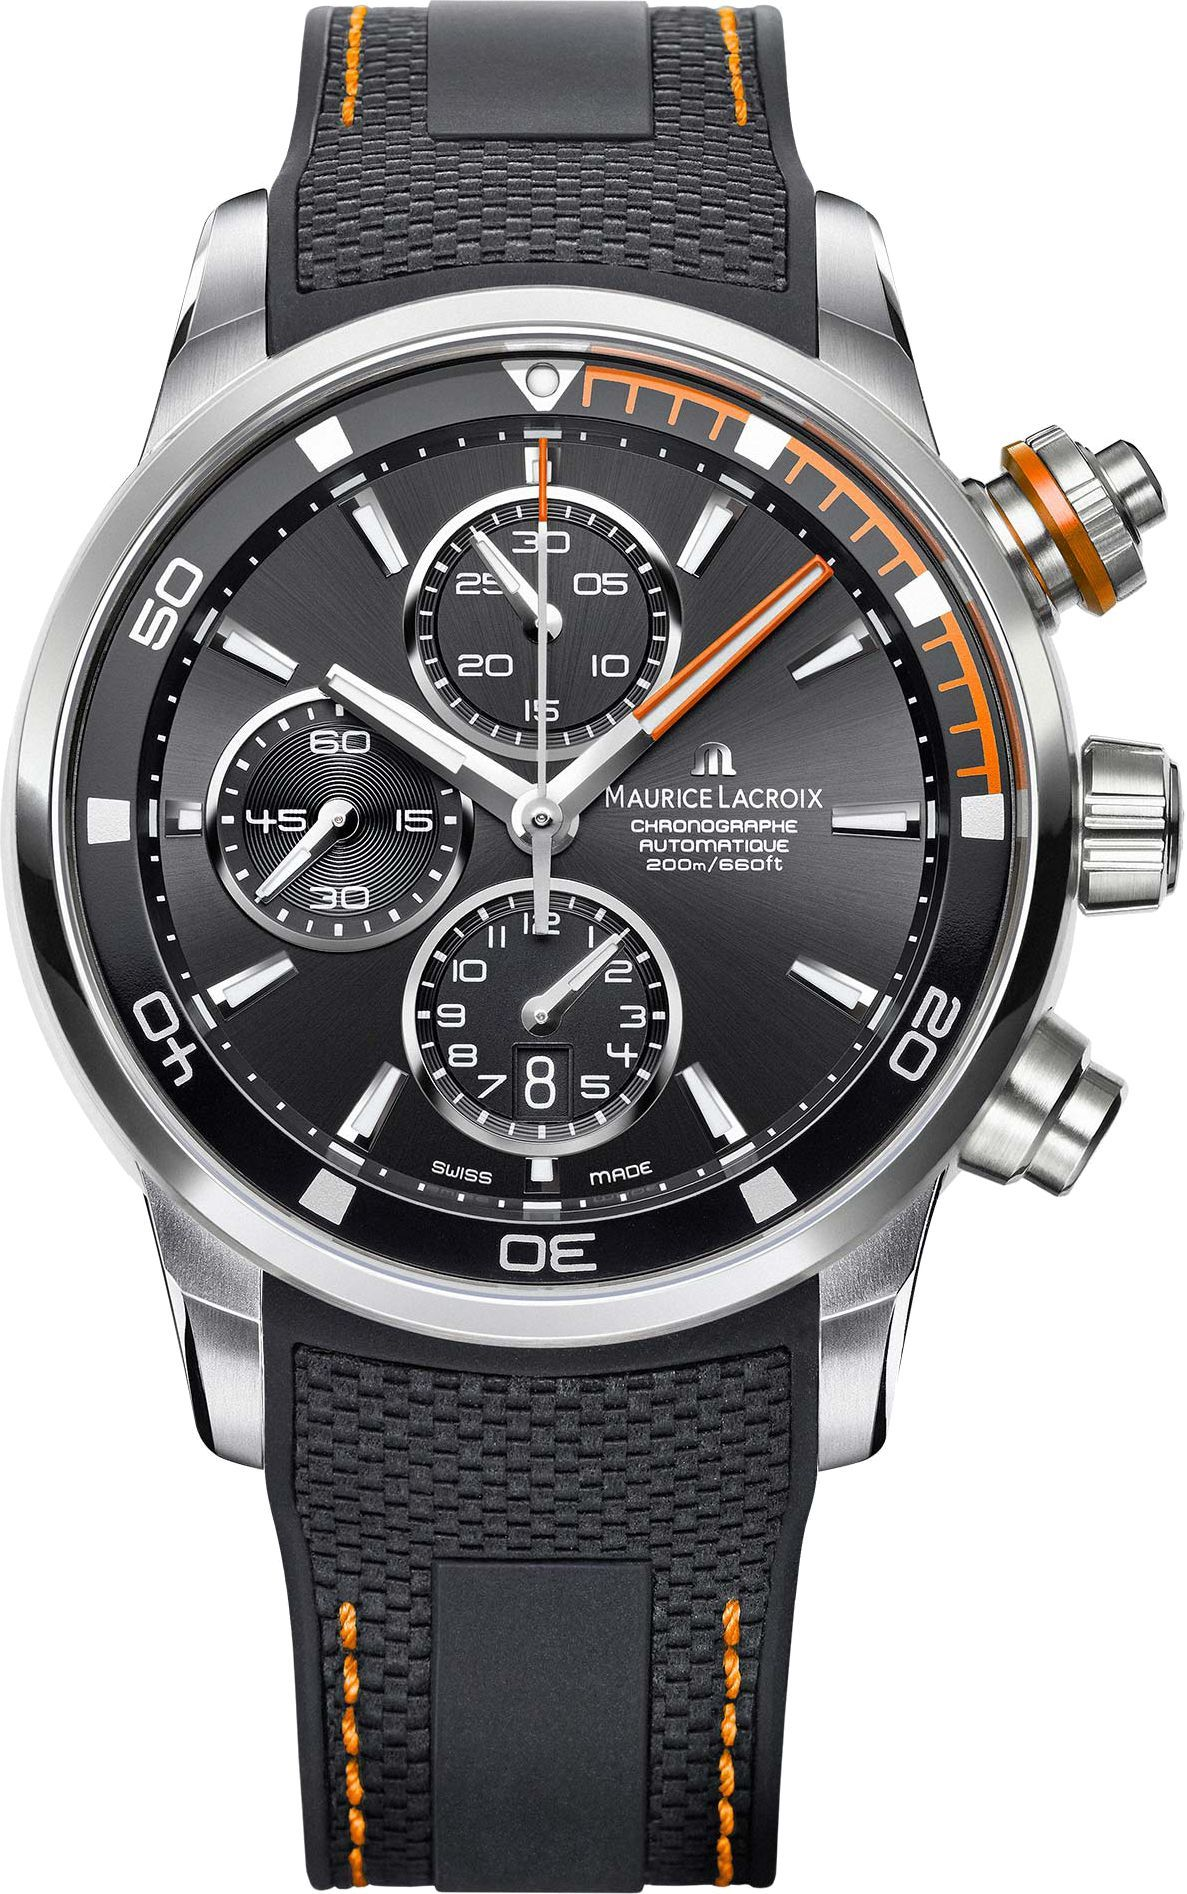 Maurice Lacroix Pontos S Pt6008 Ss001 332 1 Luxury Watches For Men Watches For Men Swiss Automatic Watches